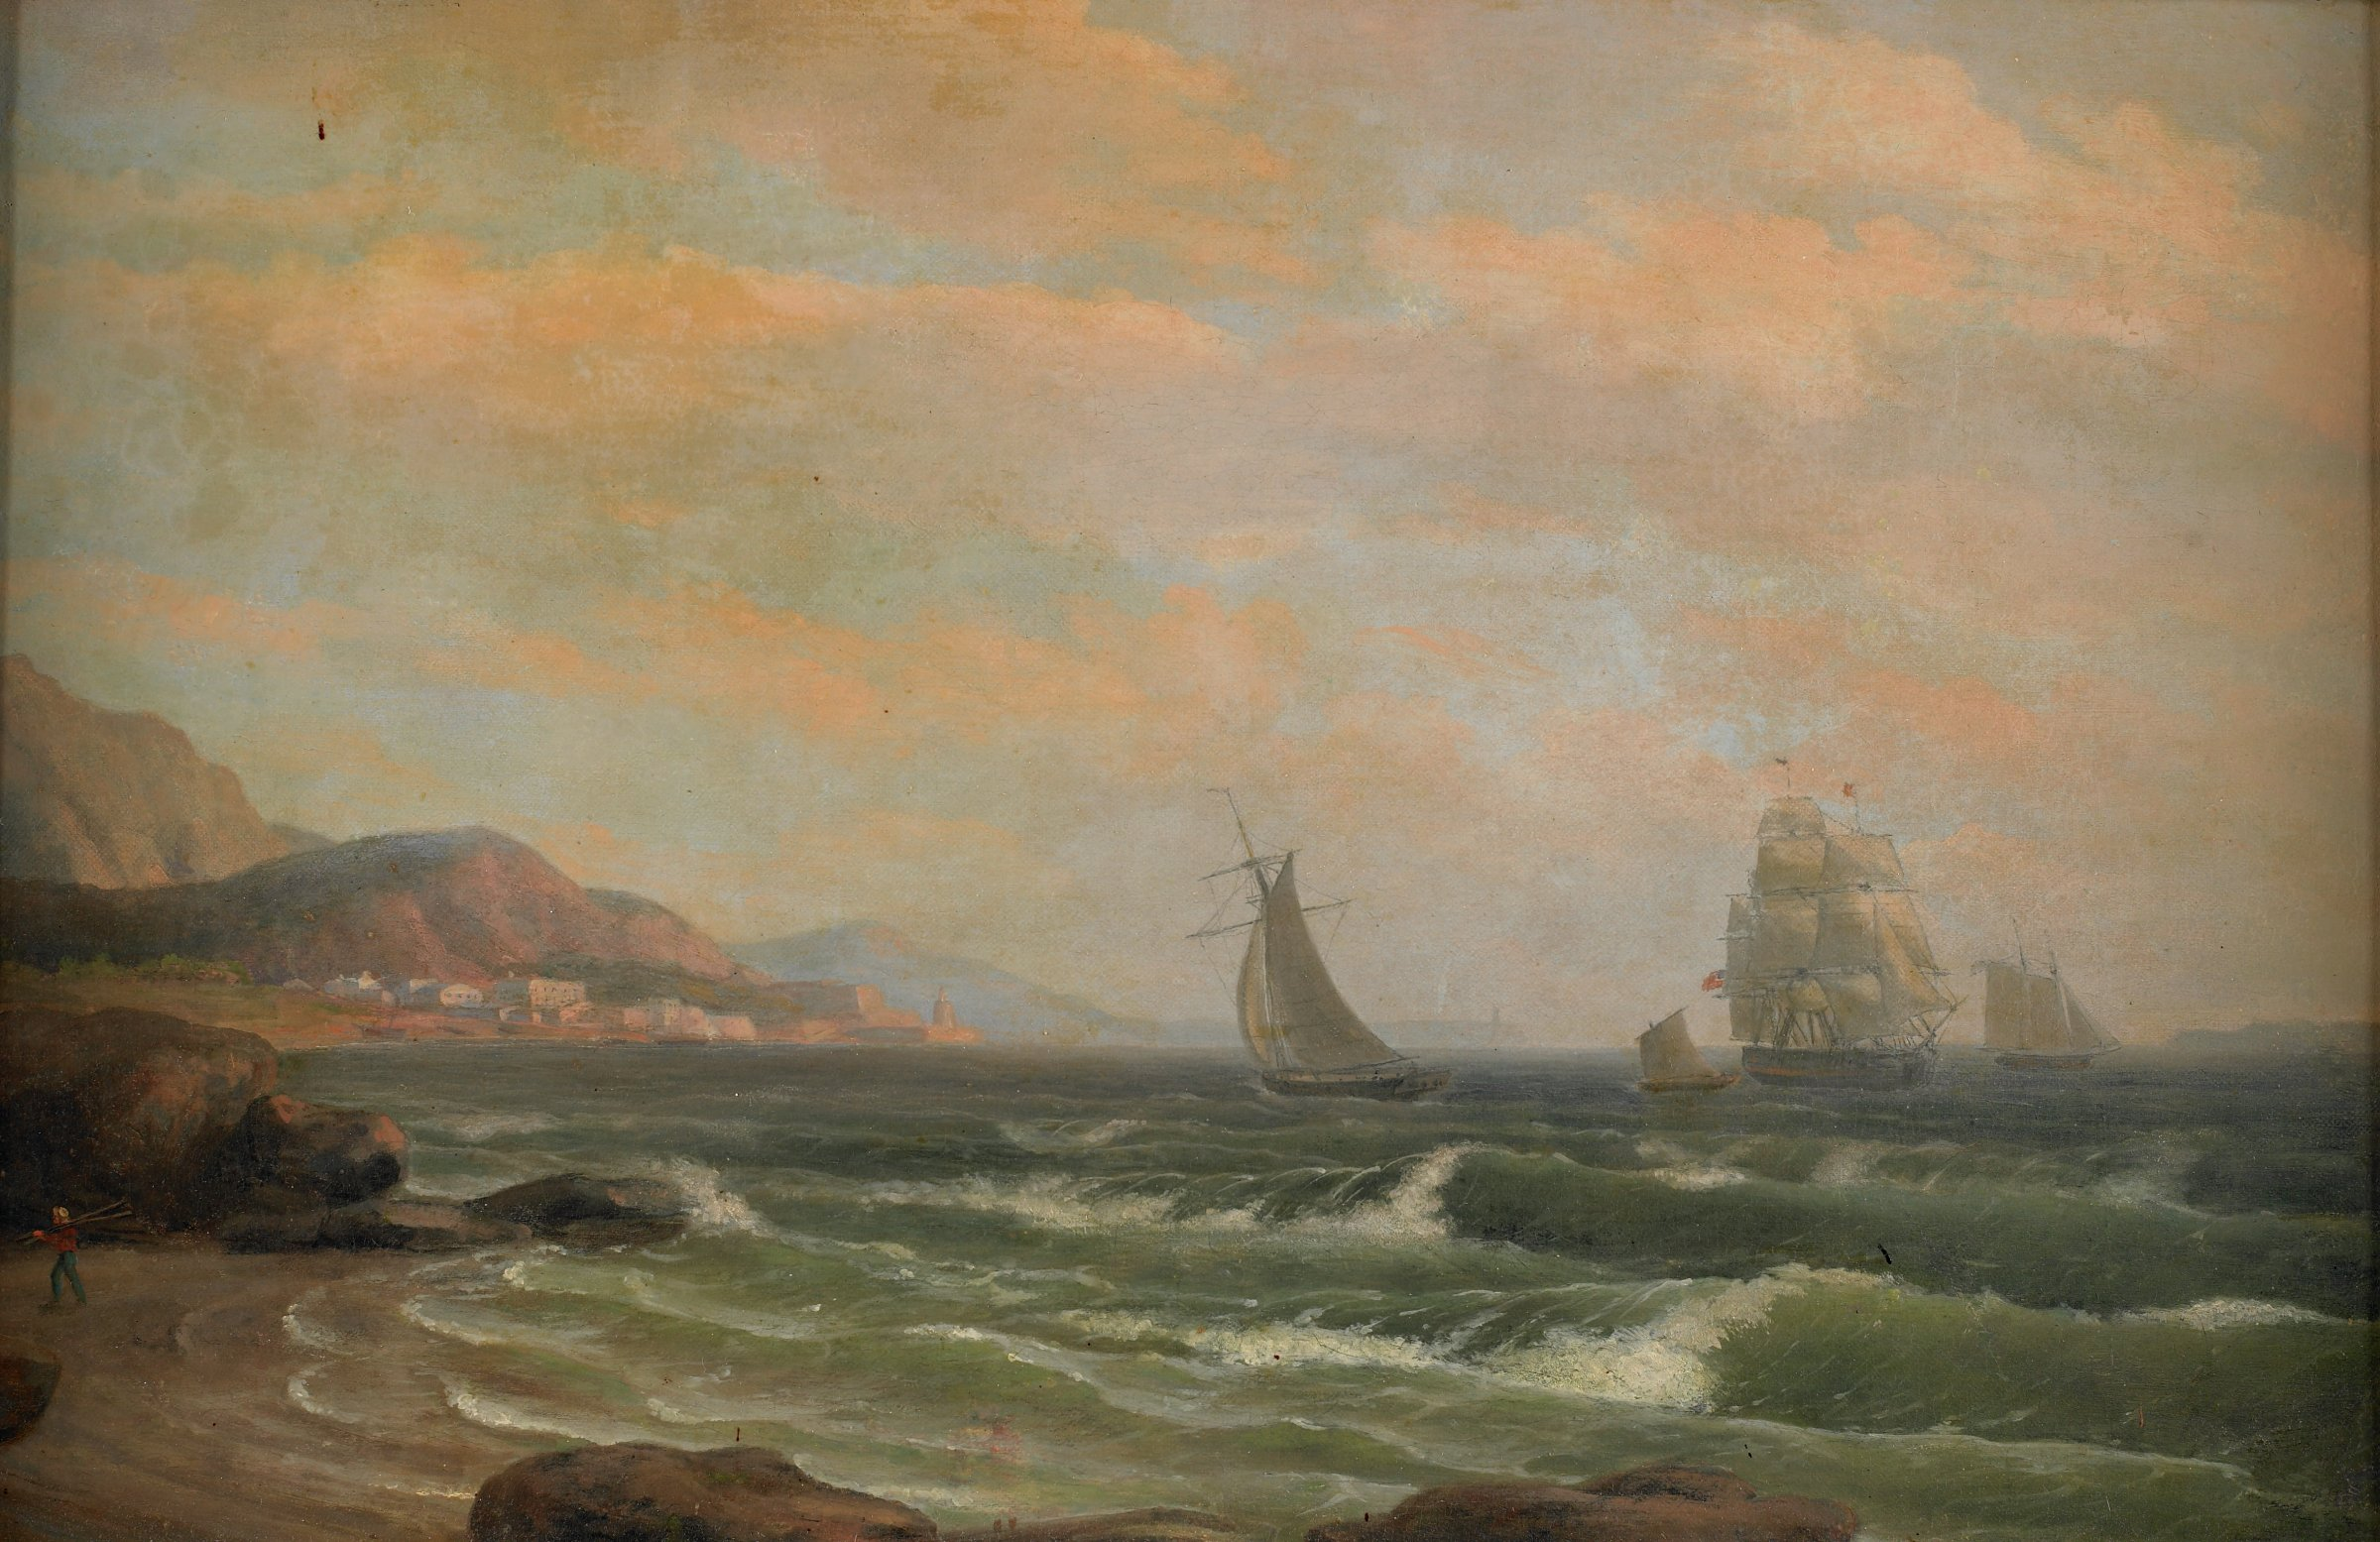 American Frigate in the Bay of St. Helena, Thomas Birch, oil on canvas